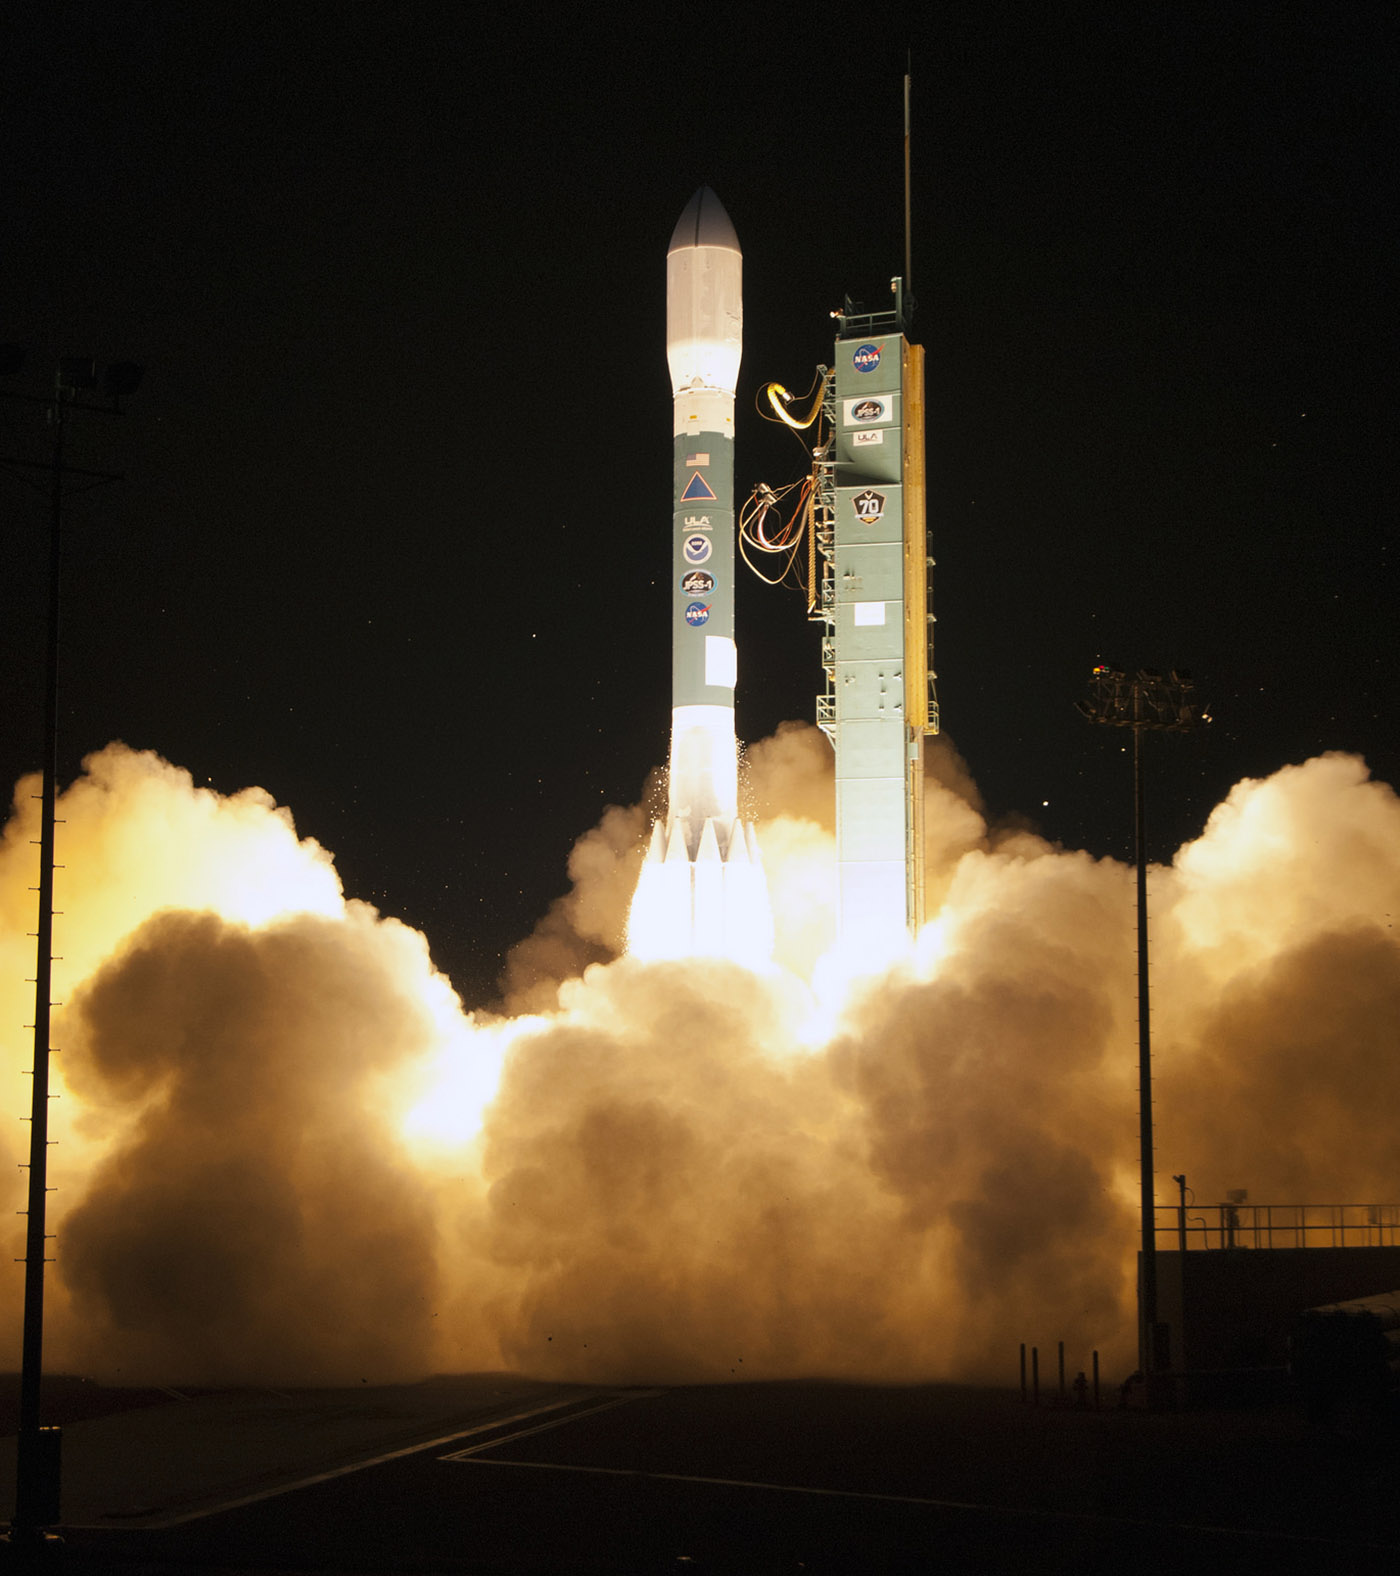 JPSS-1 (NOAA-20) lifts off from Vandenberg Air Force Base on November 18, 2017.